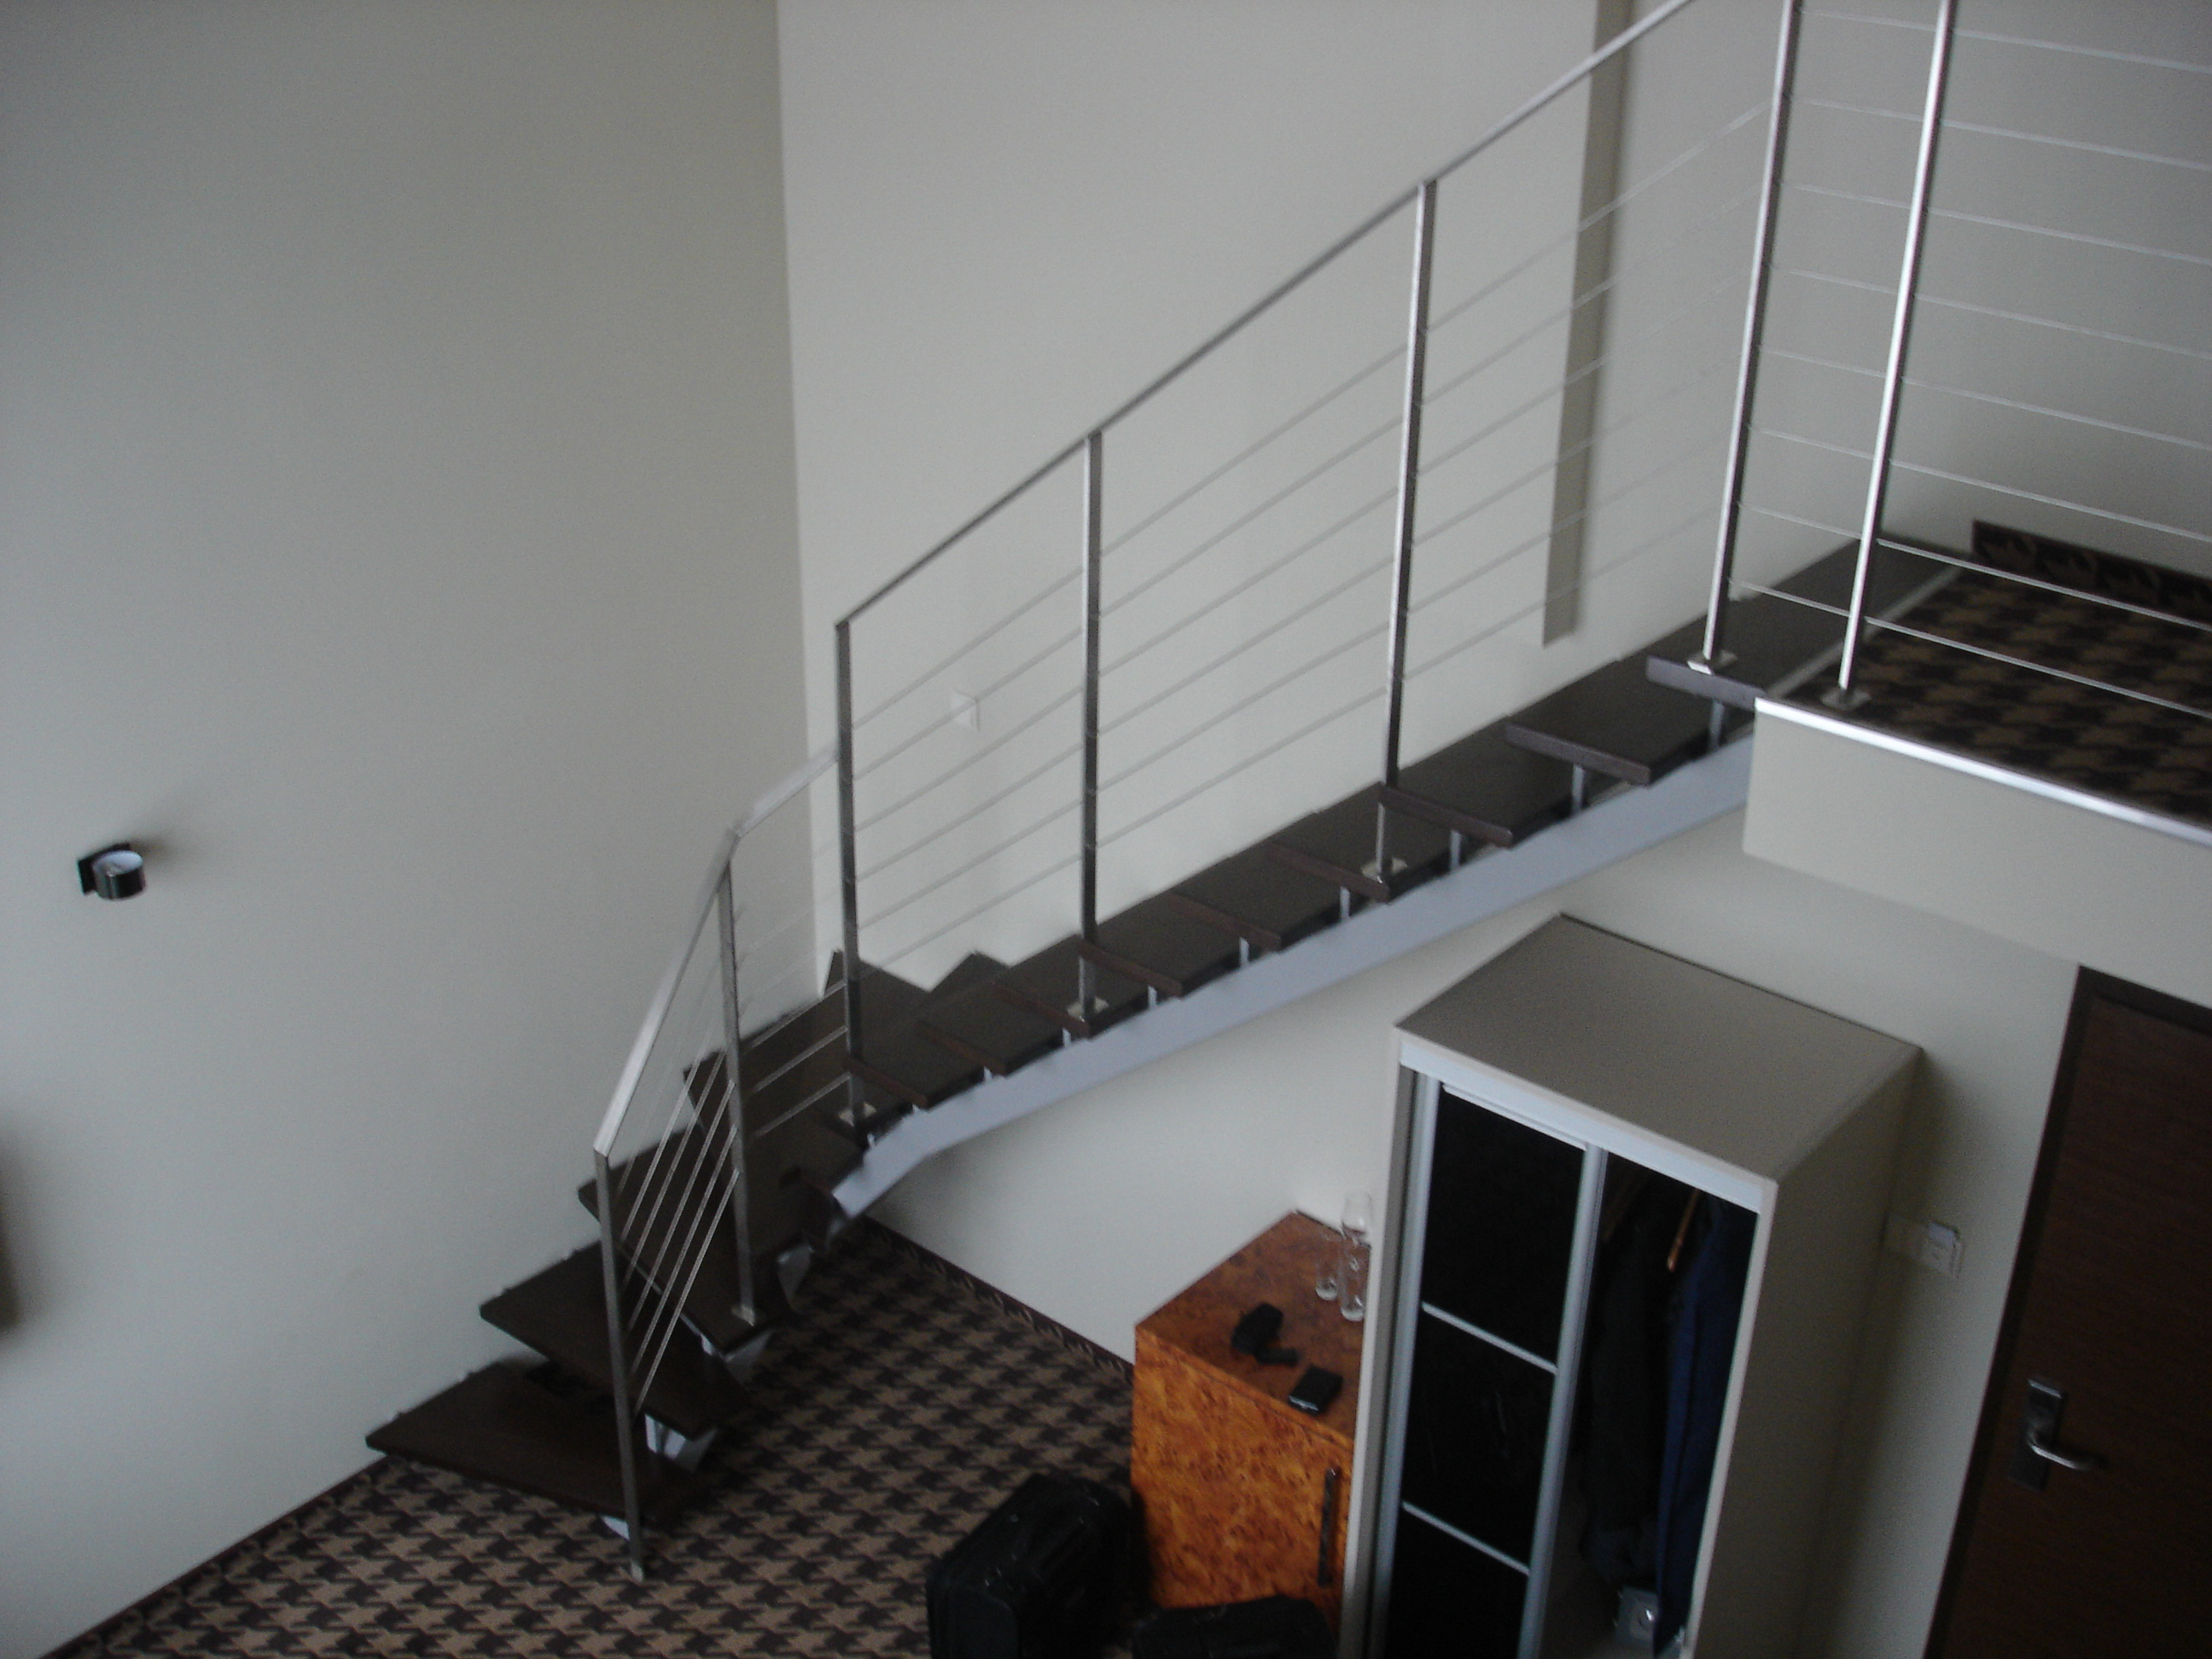 Appartement Juniorsuite in Kolobrzeg bzw. Kolberg, Zimmer